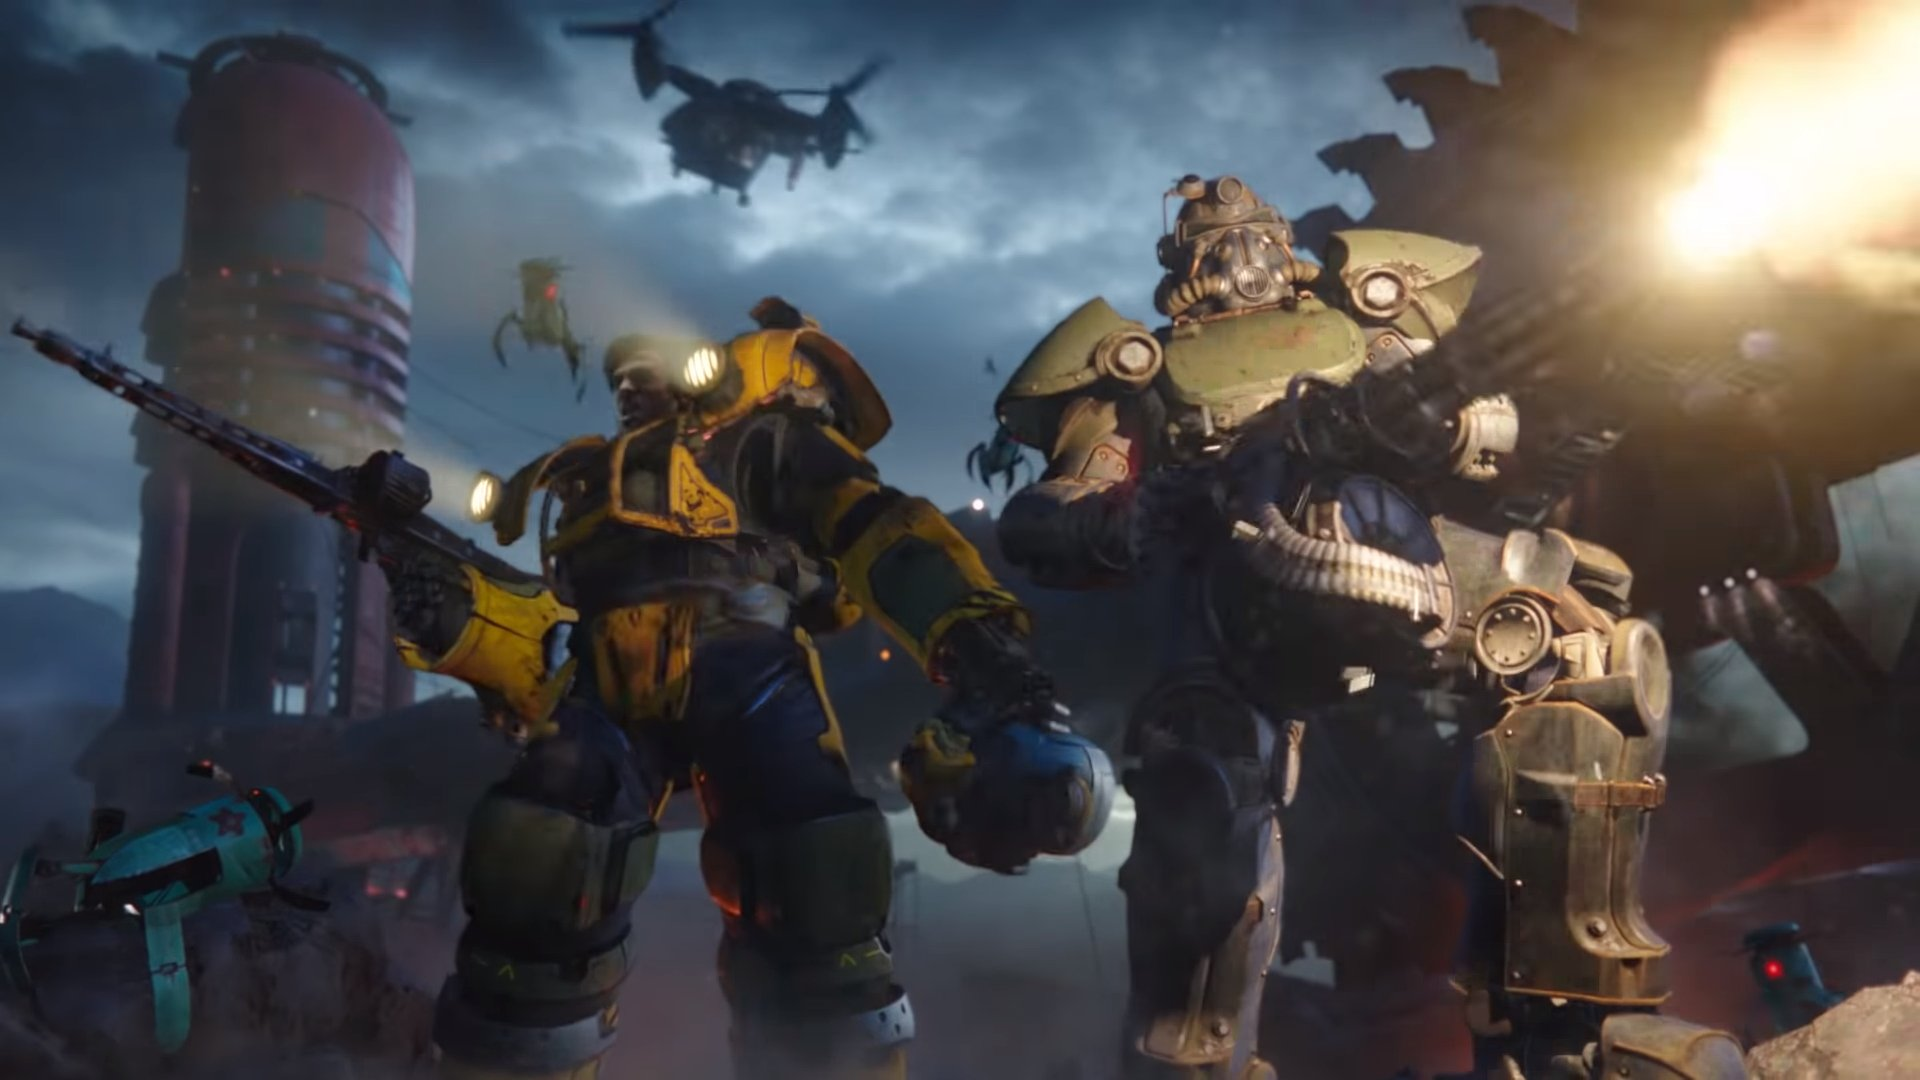 Pete Hines Of Bethesda Says 'Fallout 76's Launch Flop Caused Doom Eternal's Delay'